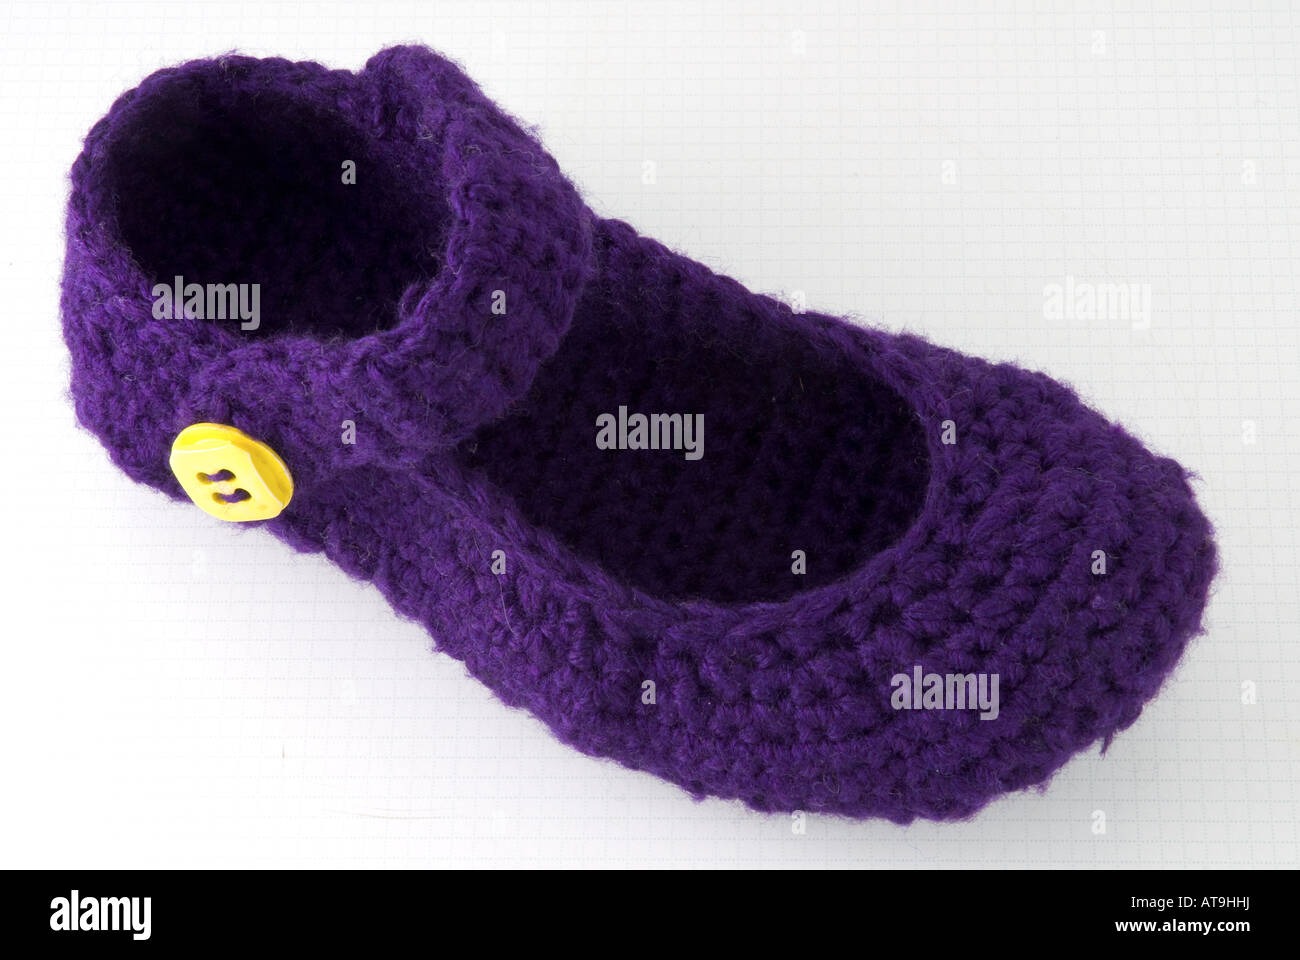 Right Foot Of Crocheted Mary Jane Slippers Stock Photo 16247261 Alamy